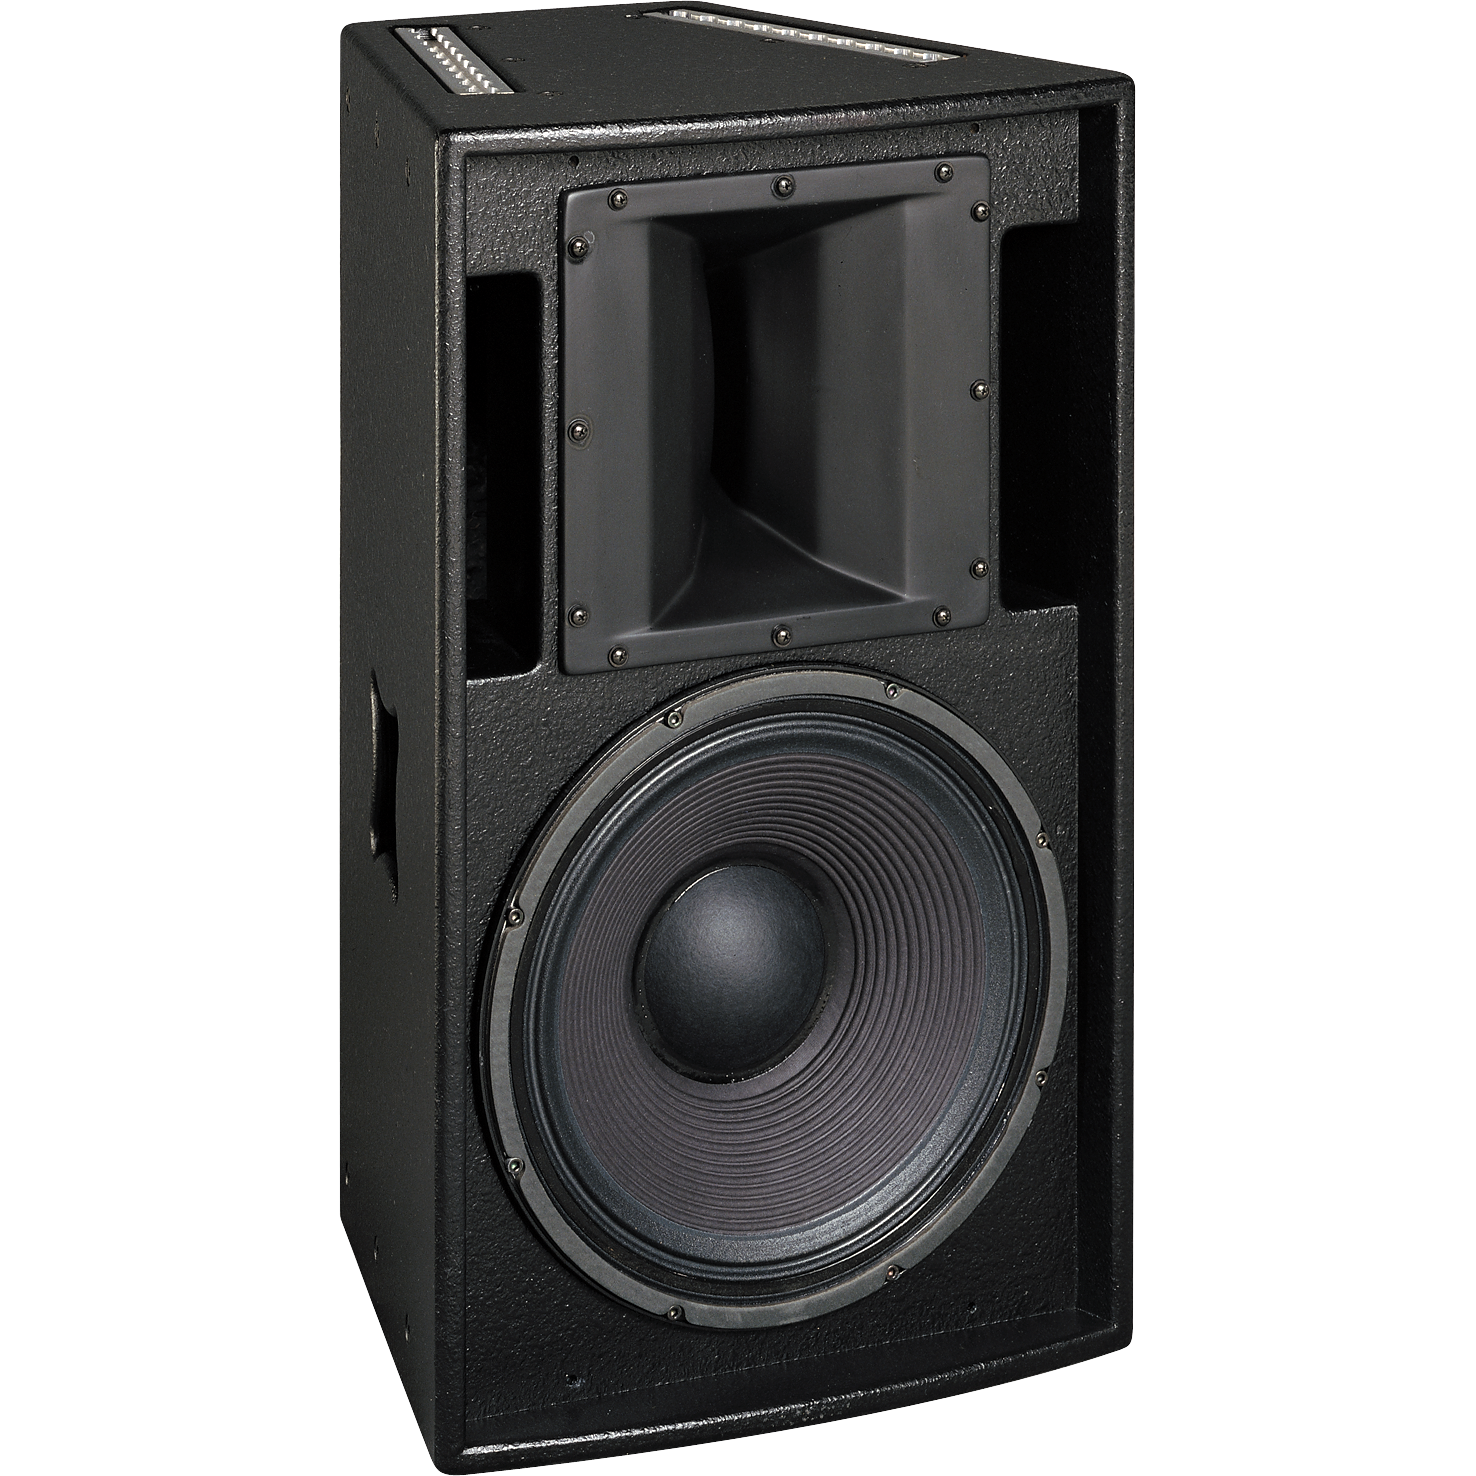 vector freeuse library Transparent speakers. Audio speaker png image